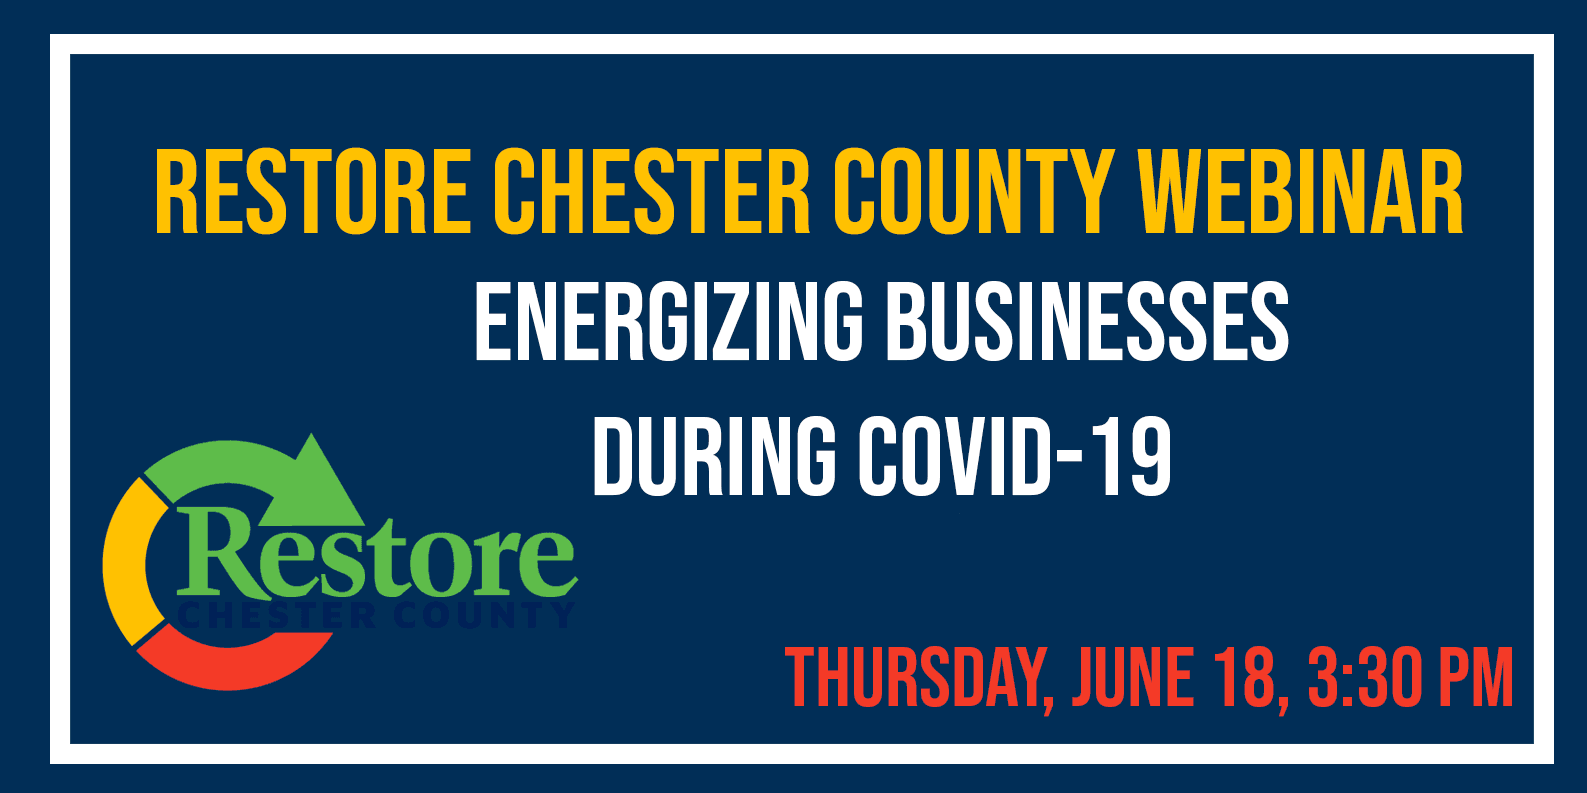 County's Webinar Series Continues on Thursday with 'Energizing Businesses During COVID-19' by SCORE